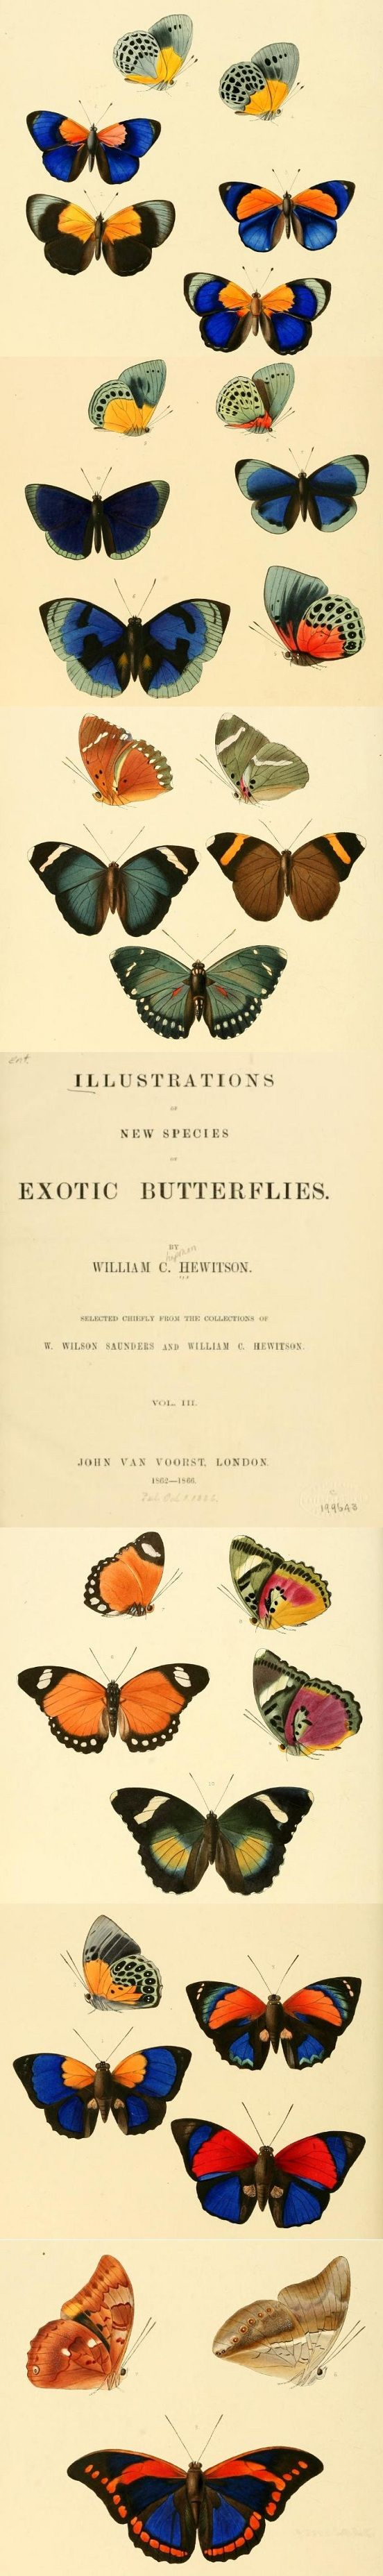 Click to read this #butterfly book from 1856. These #butterflies are great inspiration for #woodworking, #craft, #art and many other #DIY projects!